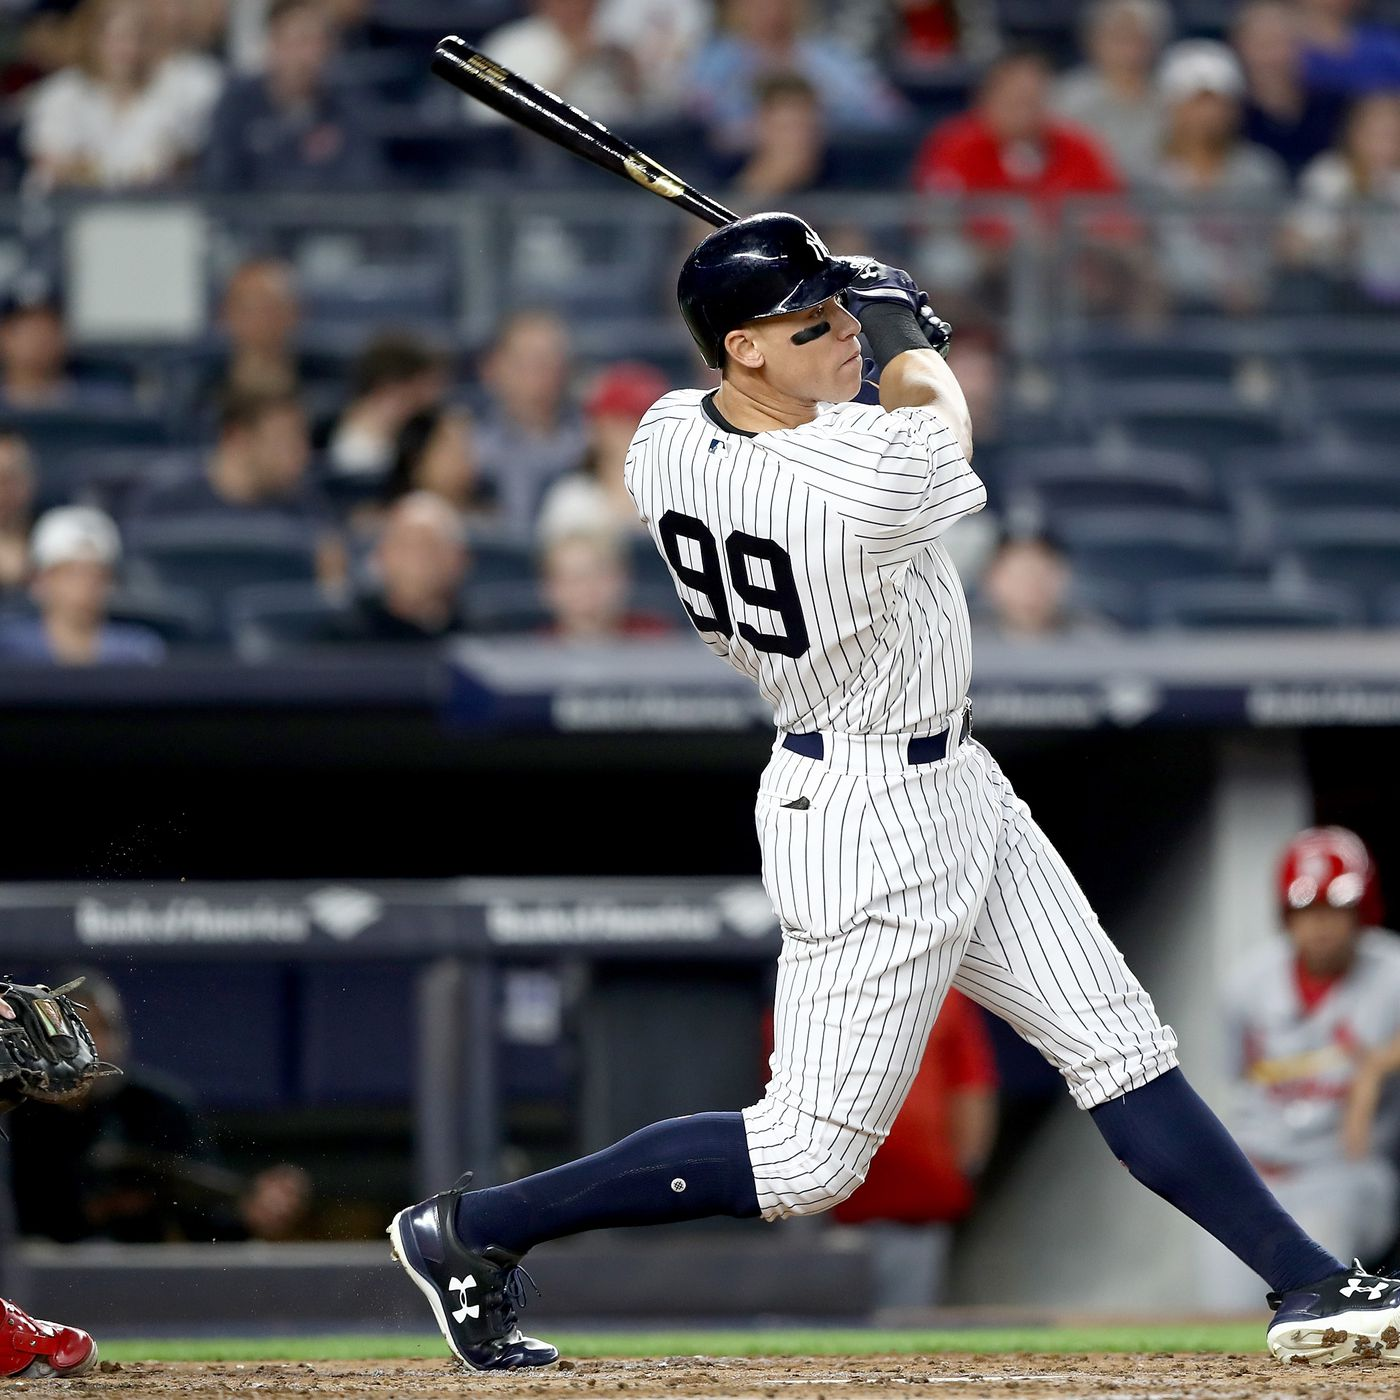 Aaron Judge won the Home Run Derby - A ...